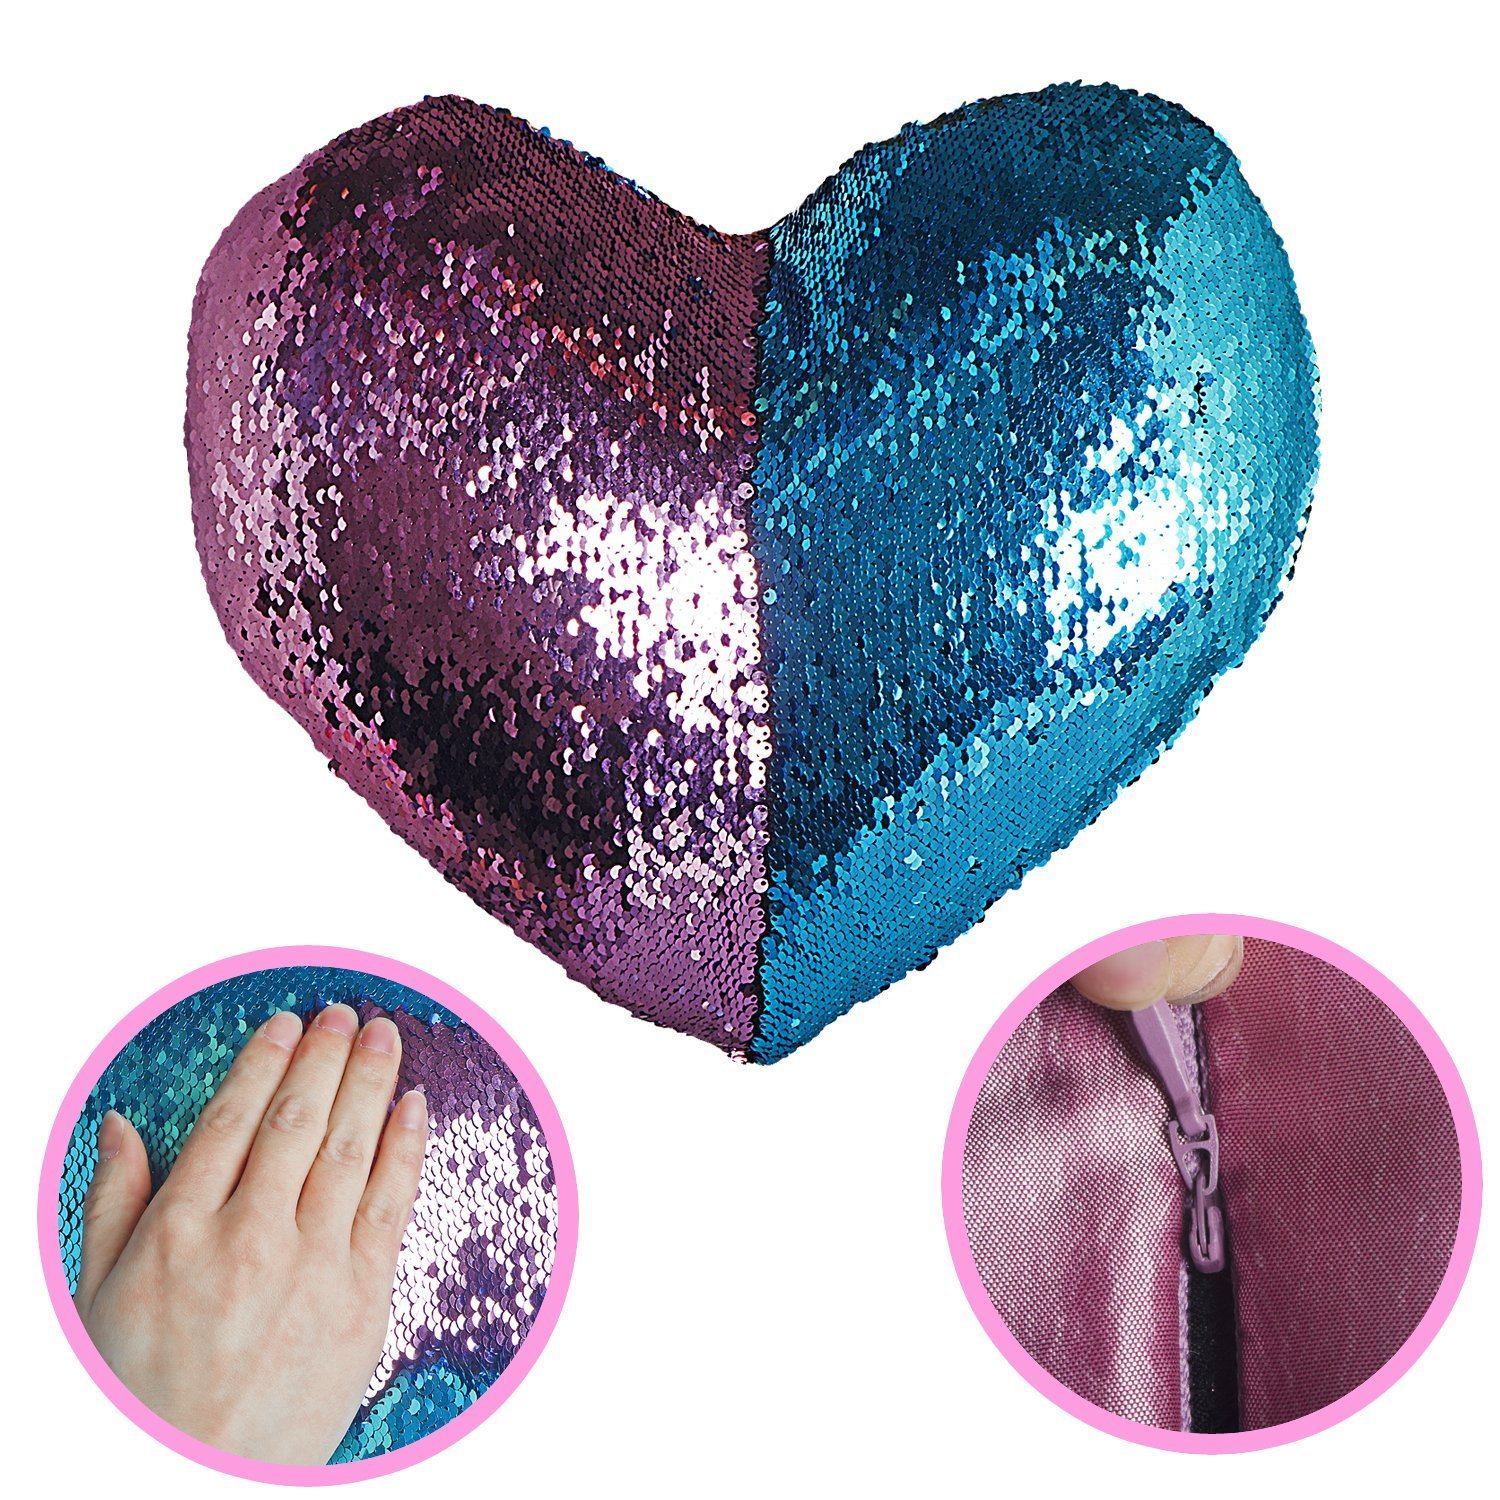 U-miss Mermaid Scale Heart Cushion Two Tone